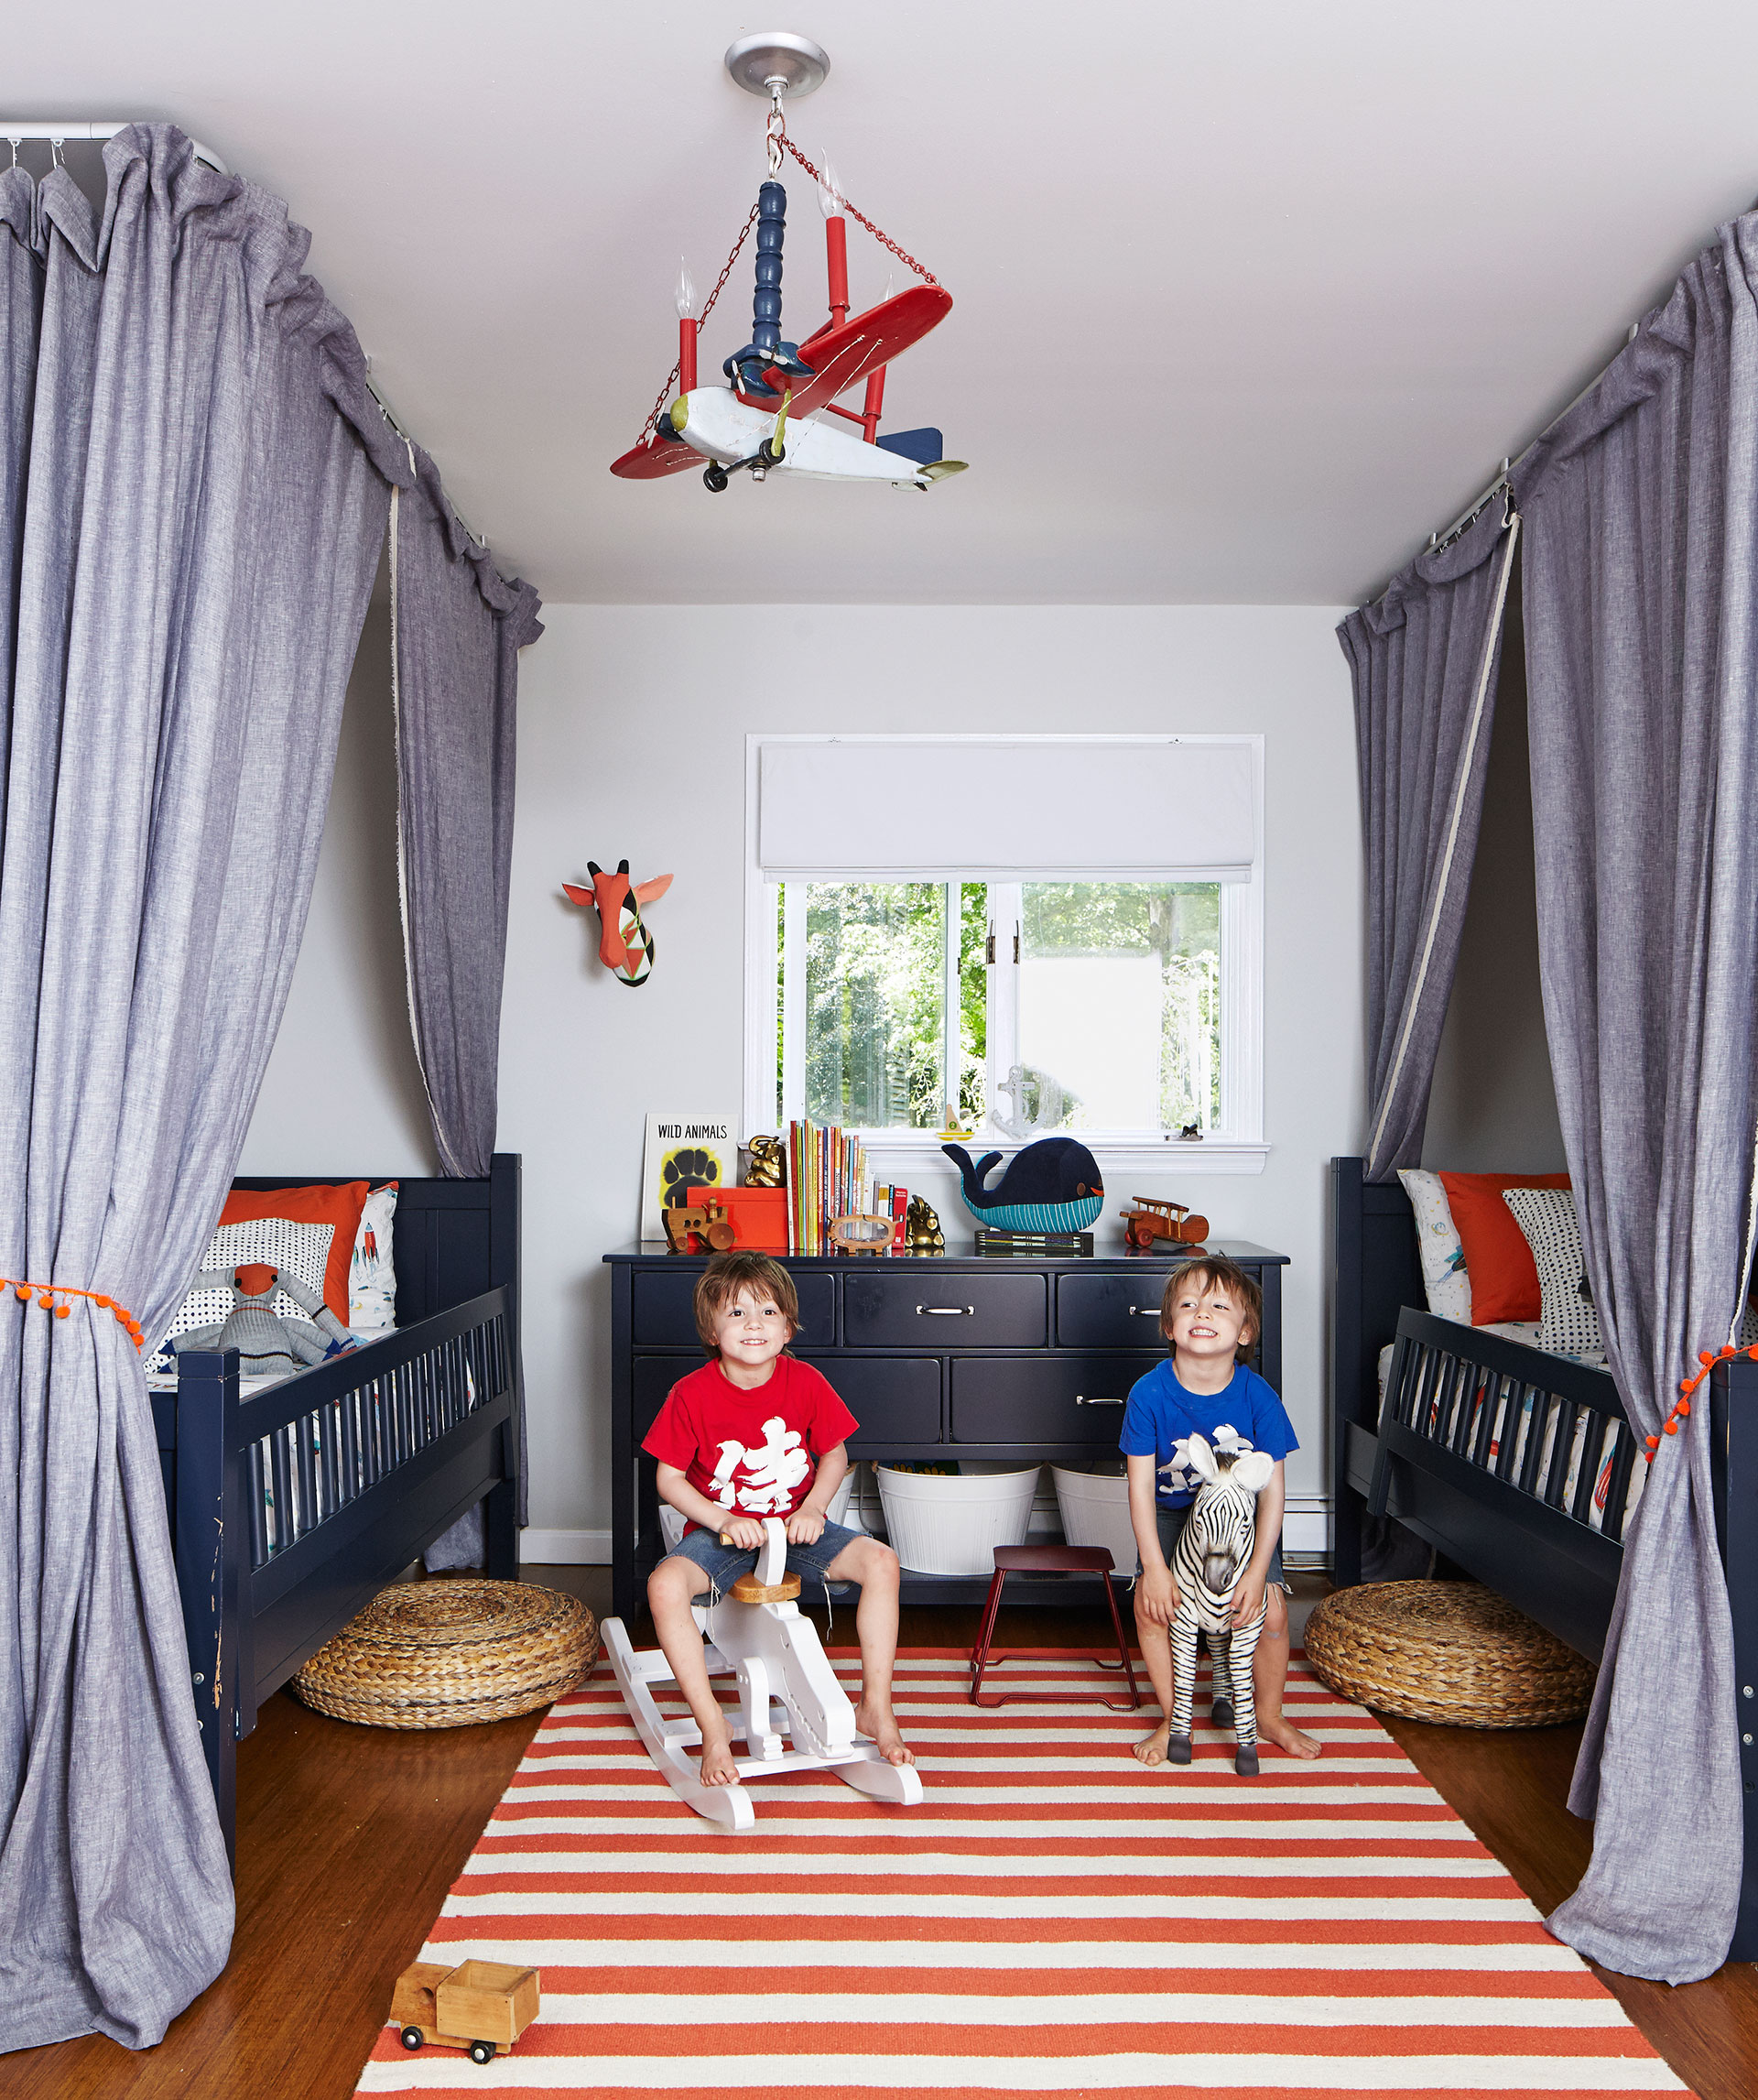 Room Ideas For Boys 50 Kids Room Decor Ideas  Bedroom Design And Decorating For Kids